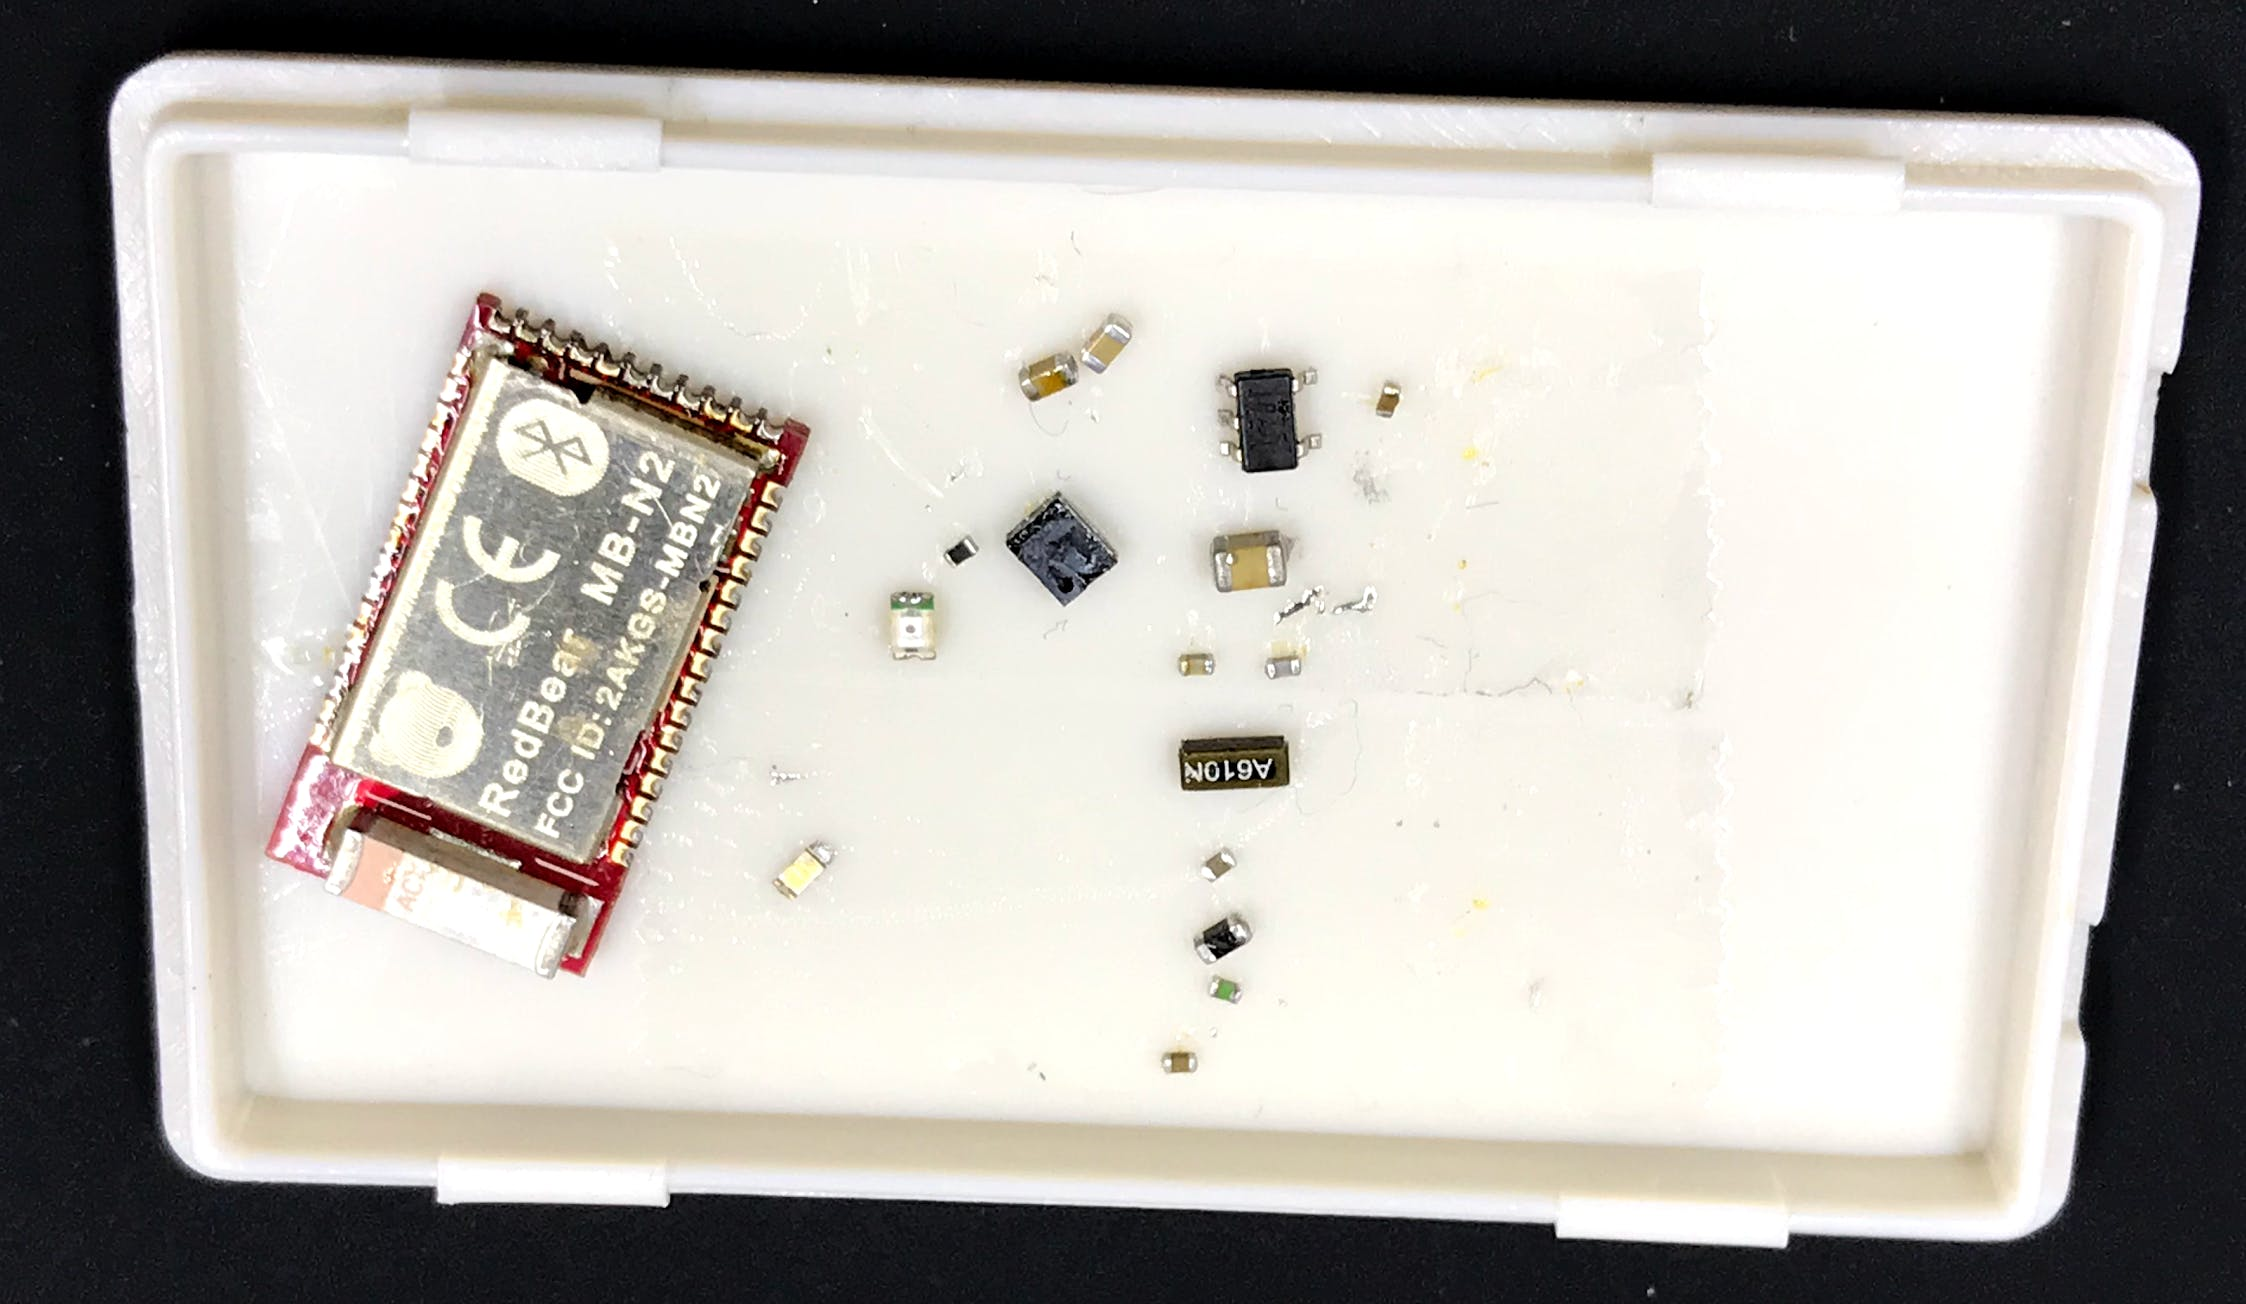 Salvaged components from Nano v2 board